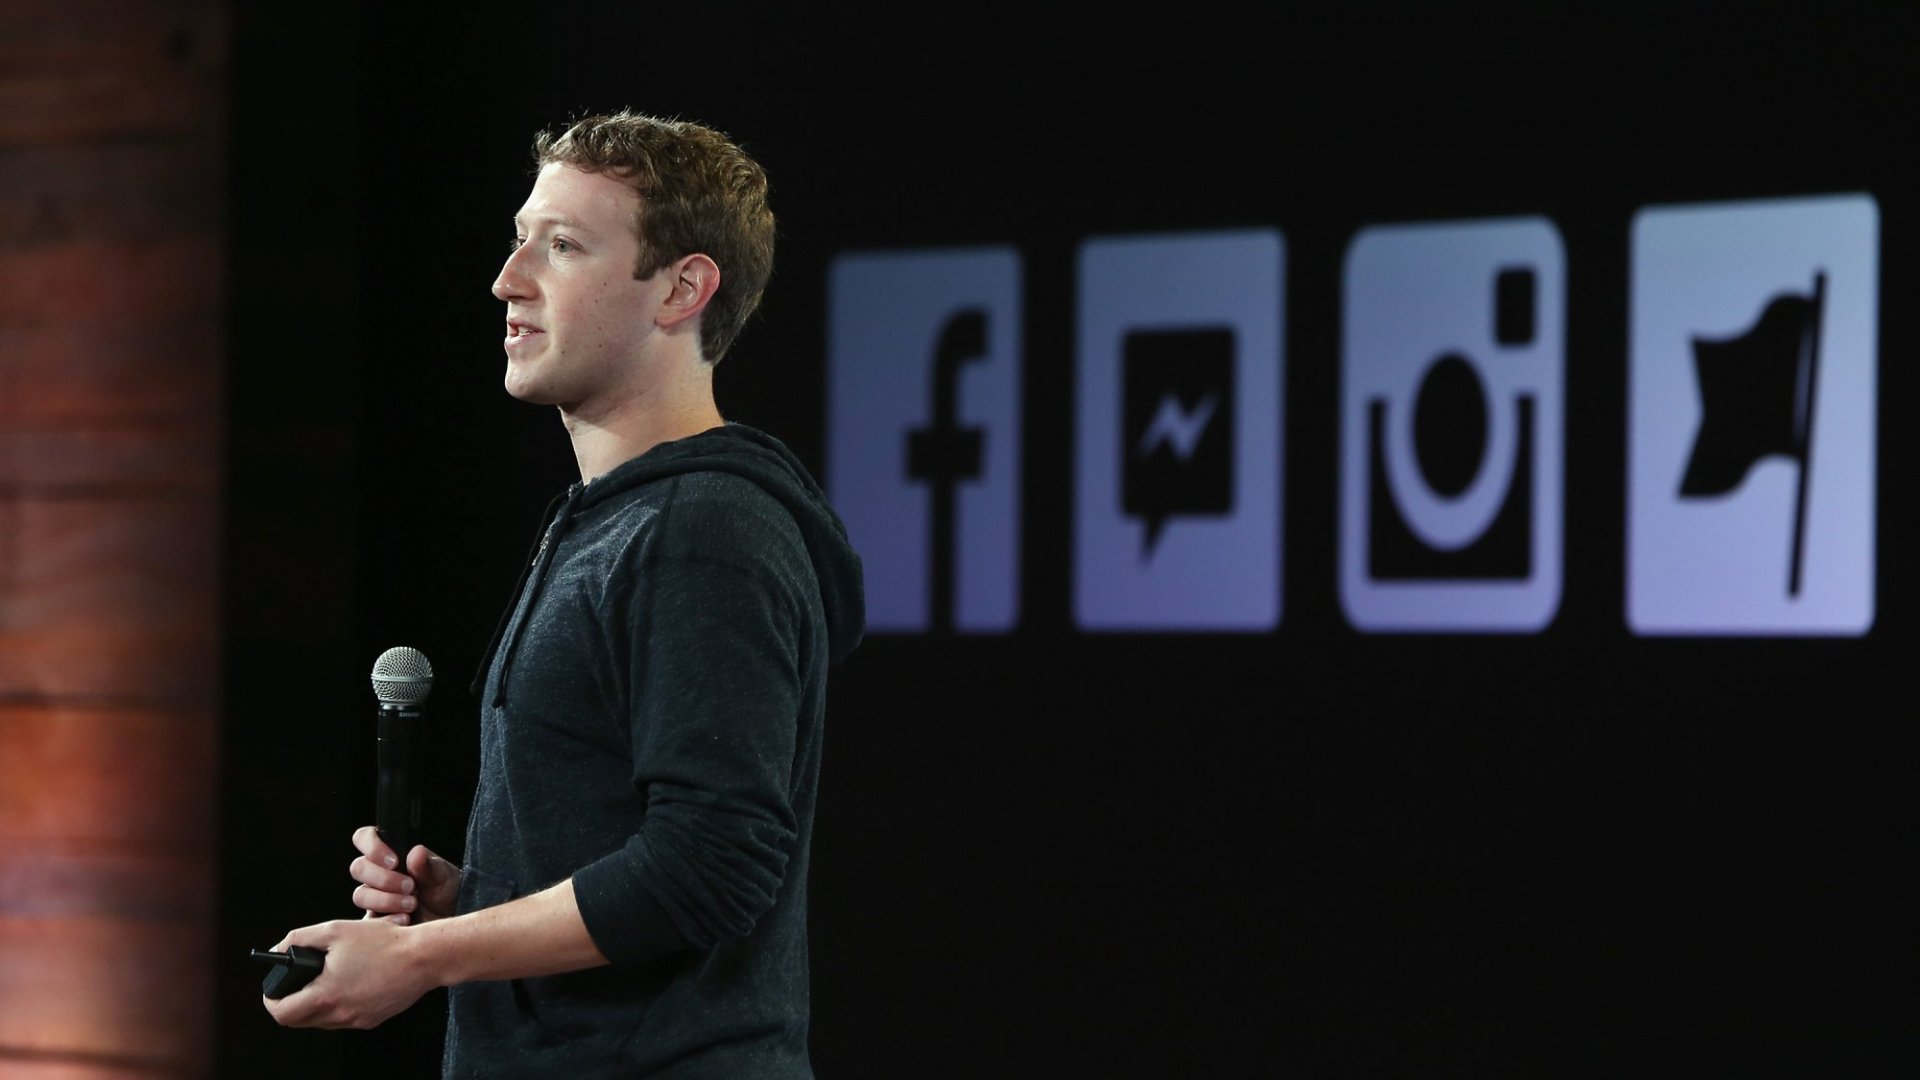 Facebook, Apple, Google, and Amazon All Want Your Data. Who Wins Depends on This 1 Asset